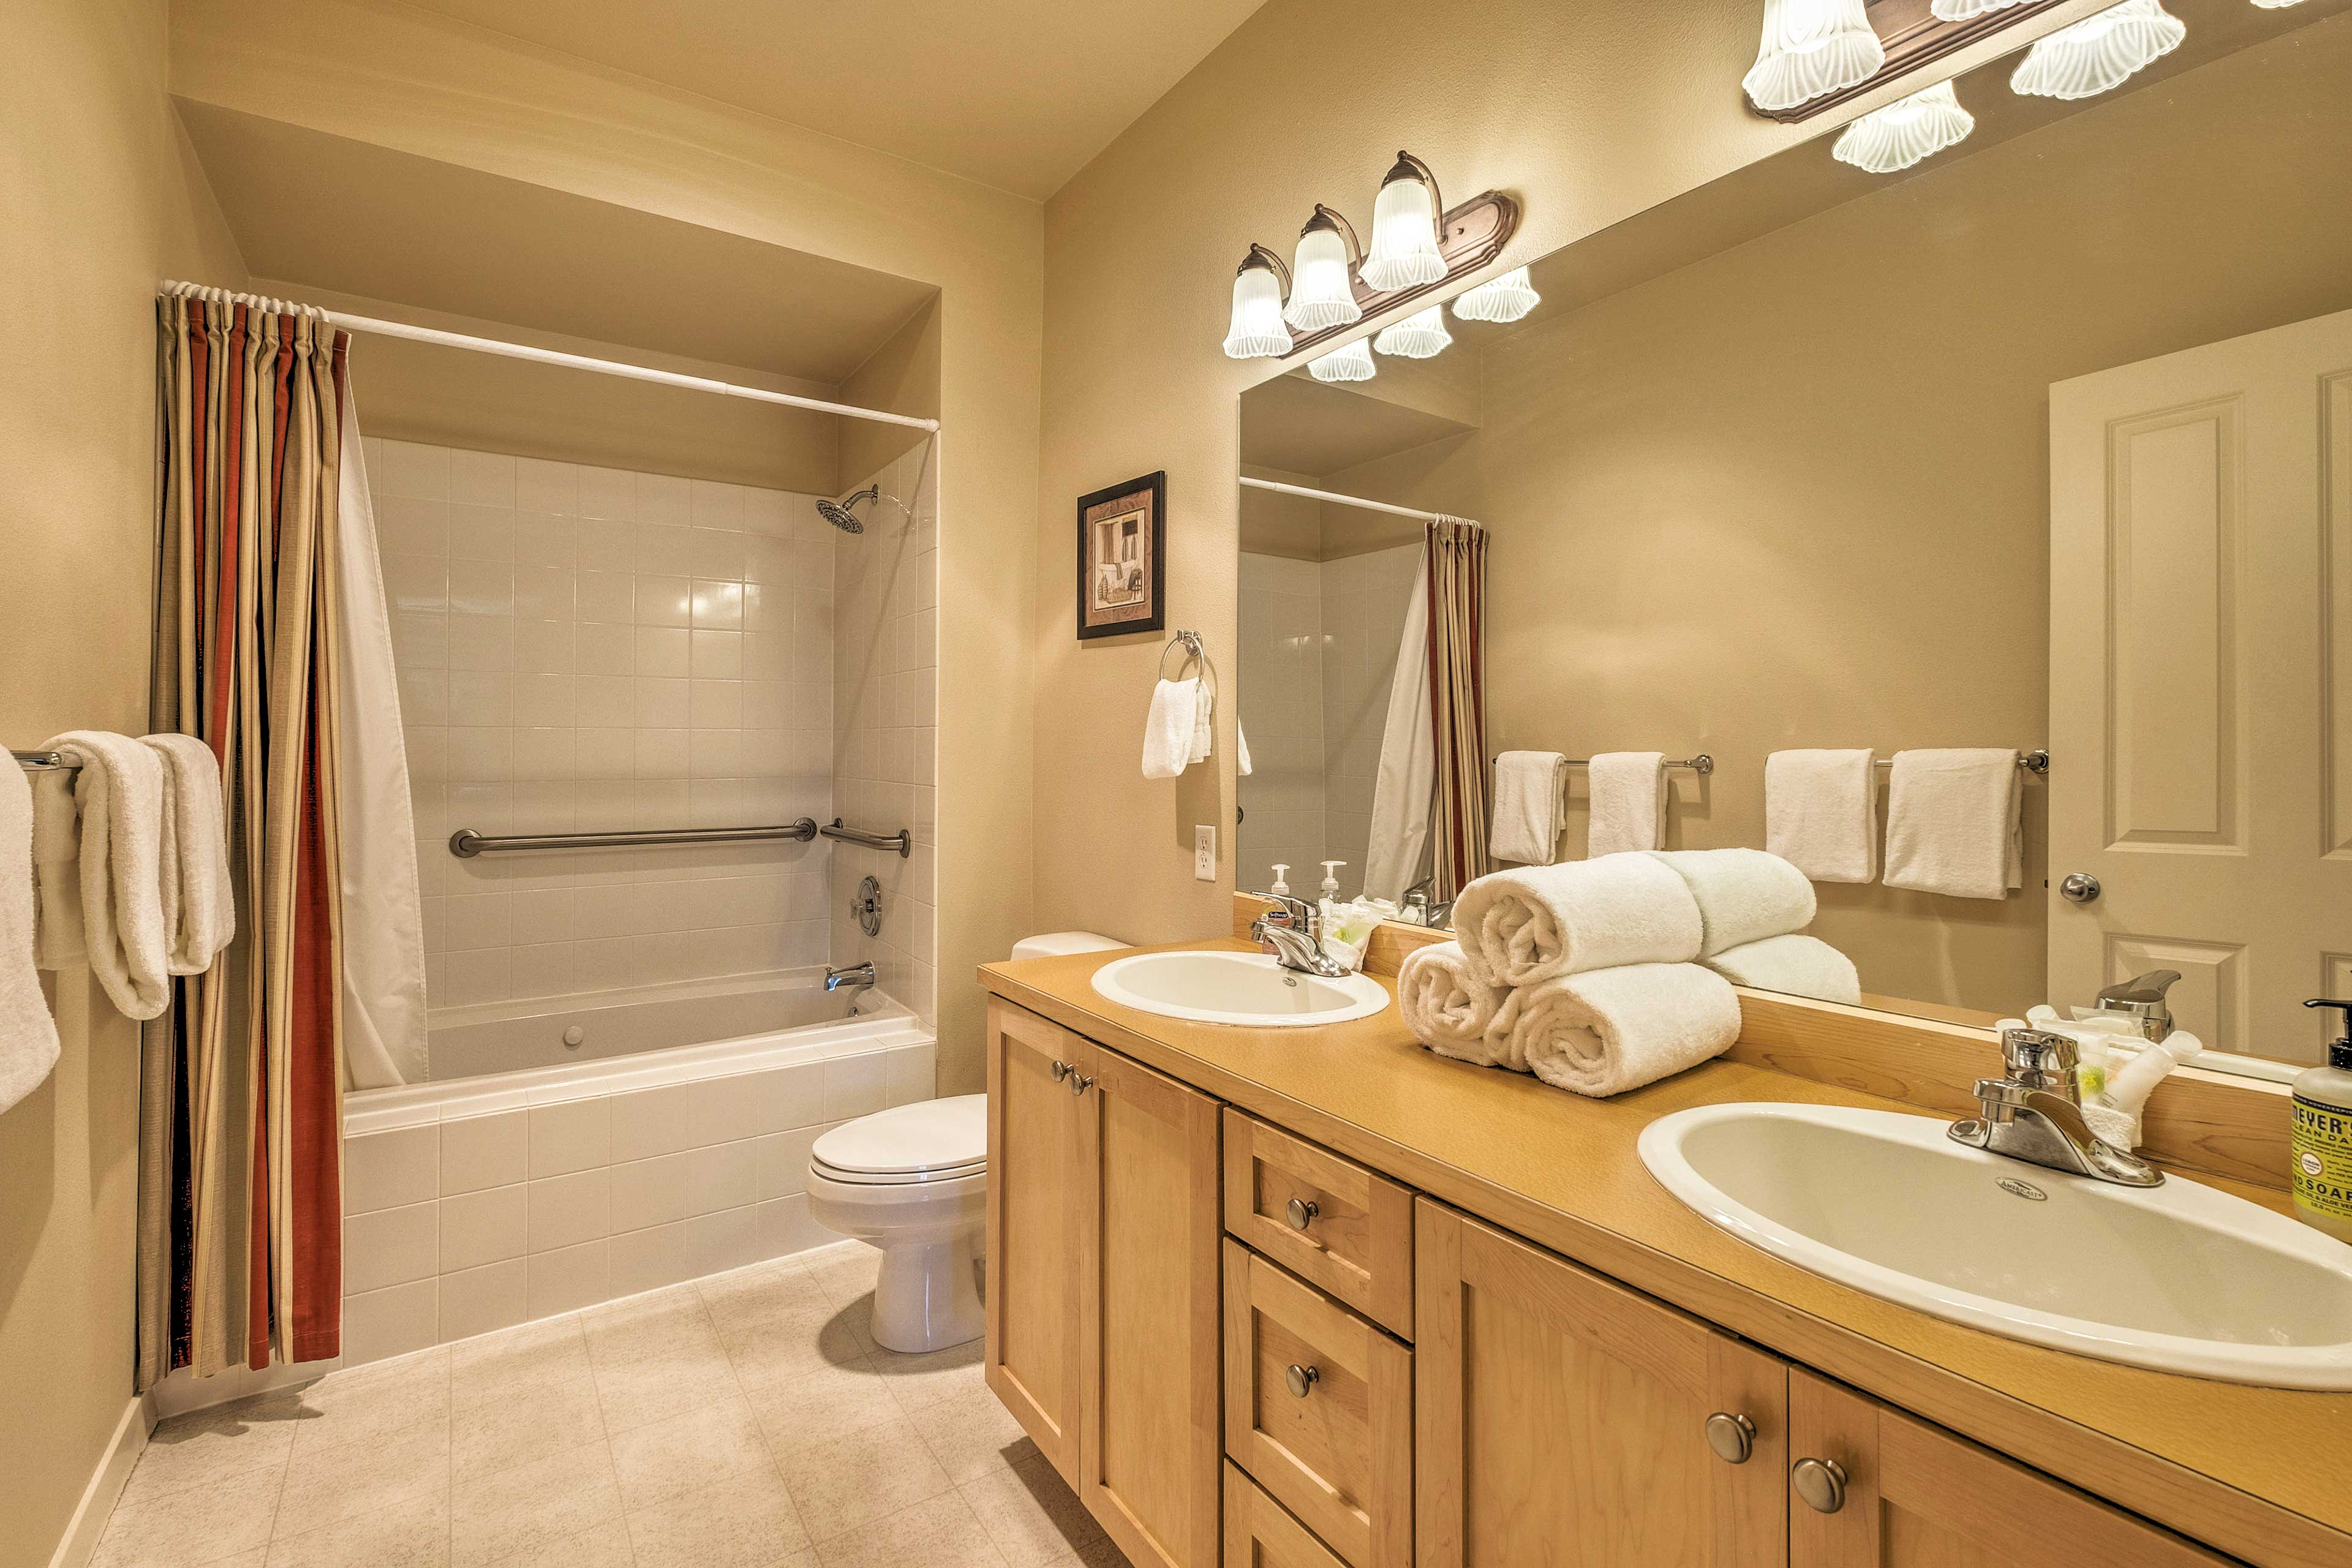 Before bed, wash up in this private en-suite bathroom.